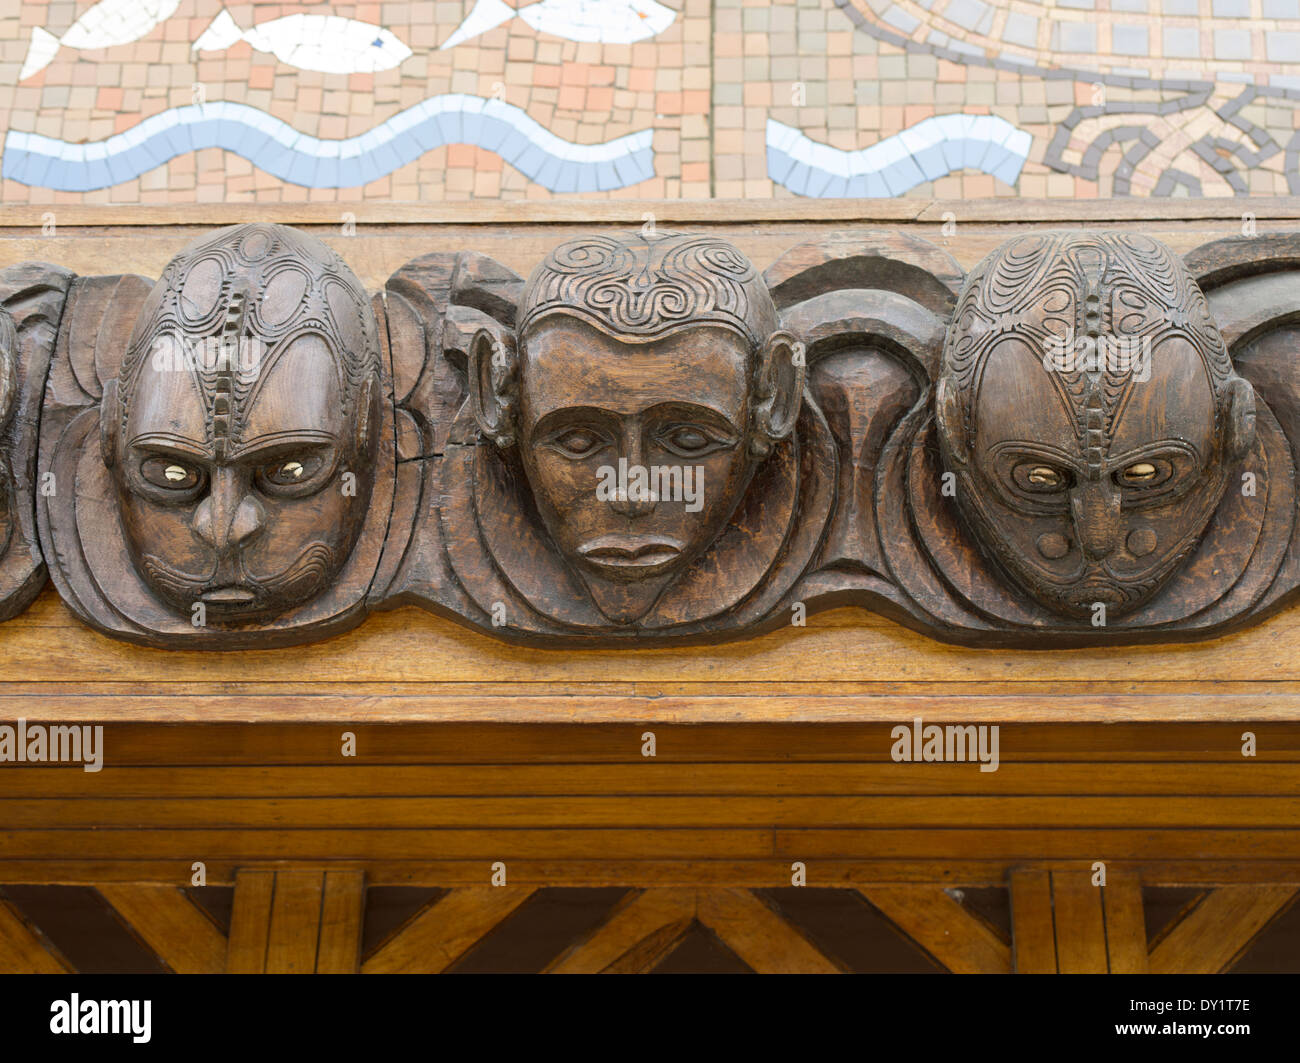 Wooden Carvings - Parliament Haus, Port Moresby City, Papua New Guinea - Stock Image